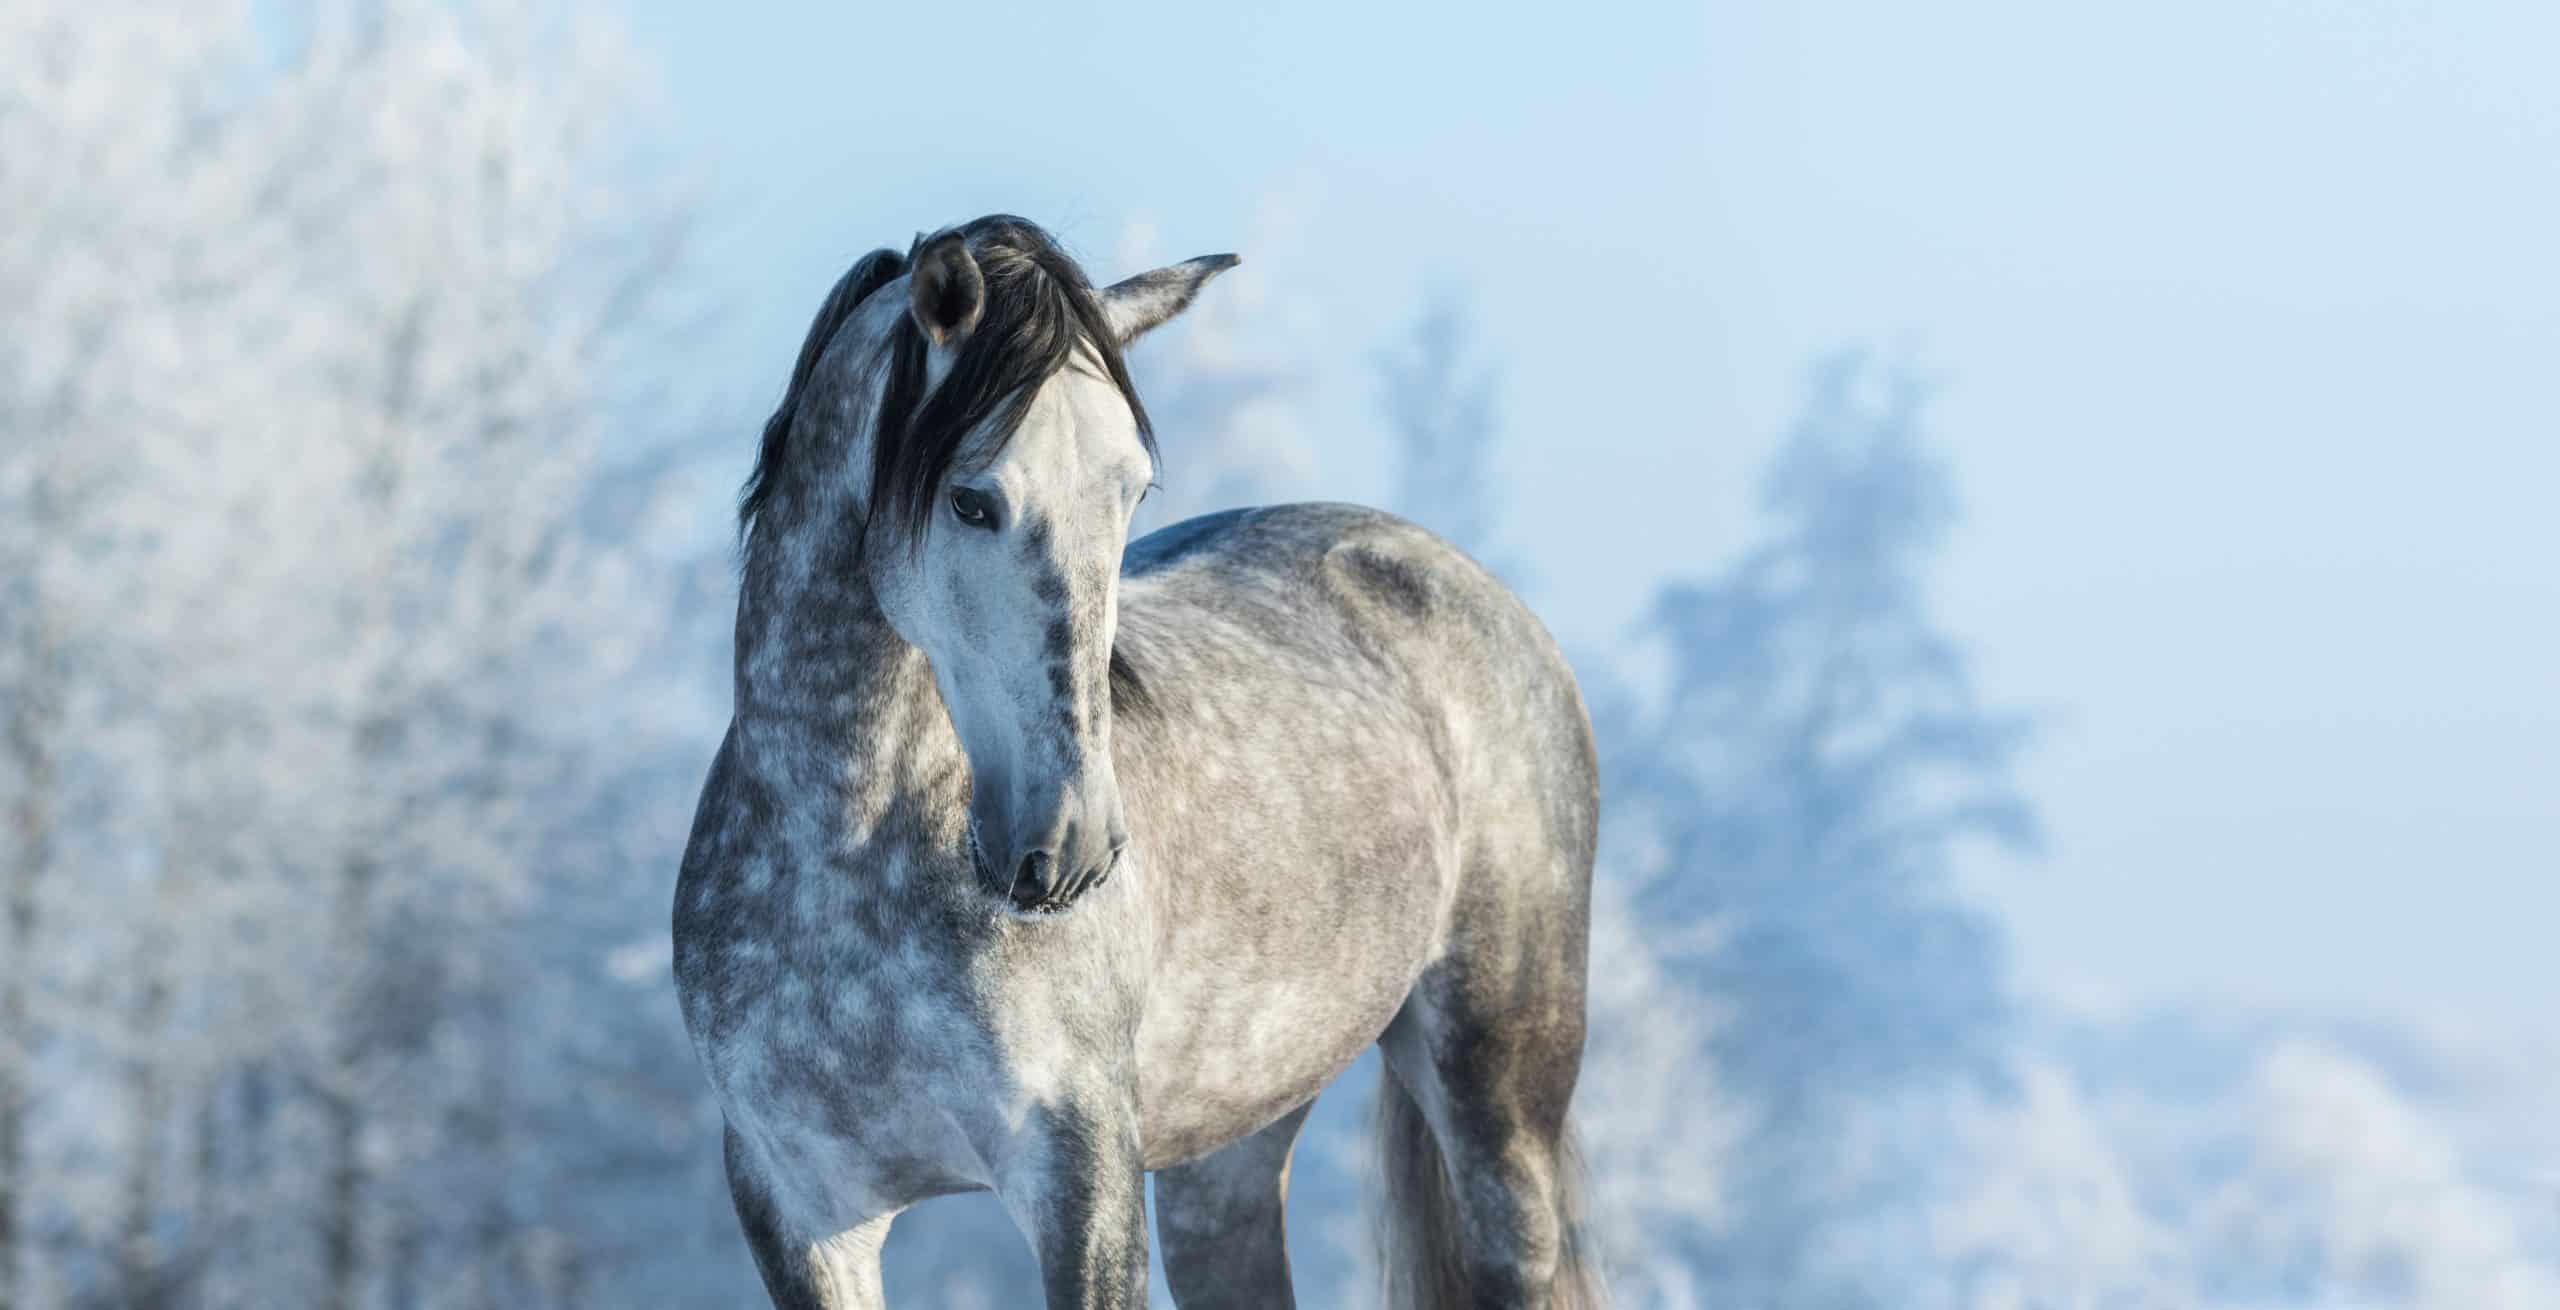 Andalusian thoroughbred gray horse in winter forest on a blue sky background. Multicolored wintertime horizontal outdoors image.